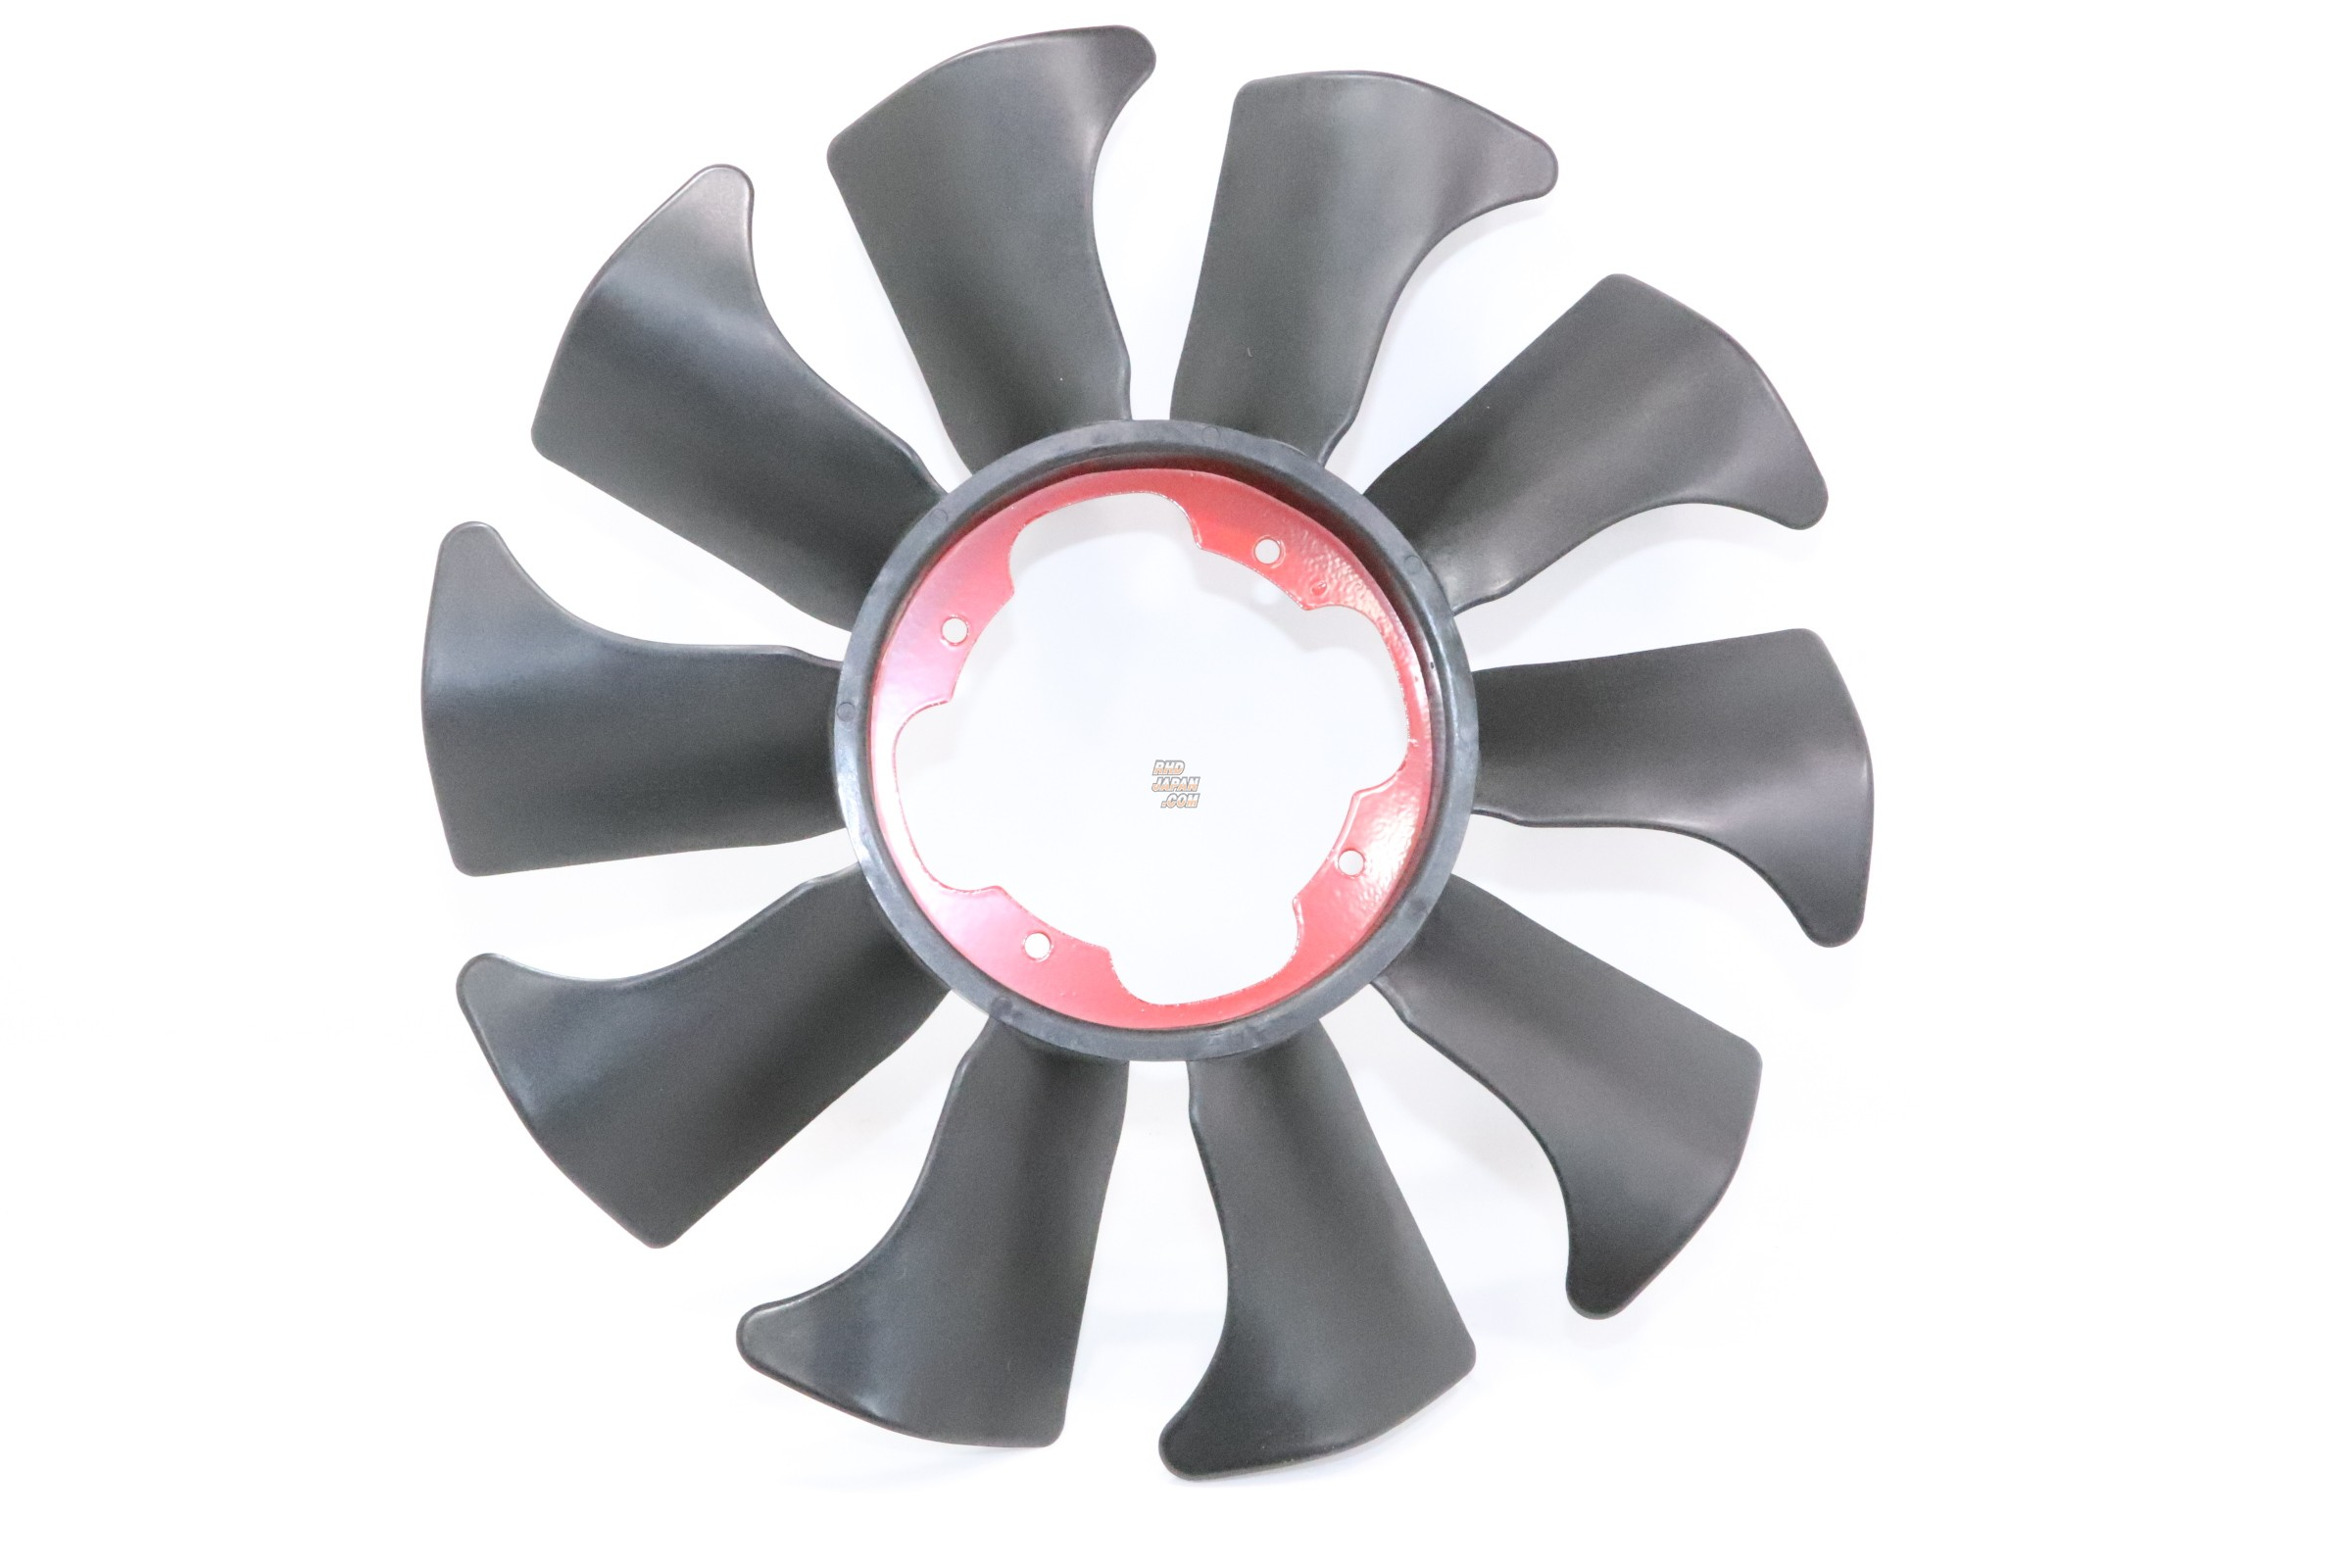 GP Sports Megatech Cooling Fan - PS13 RPS13 S14 S15